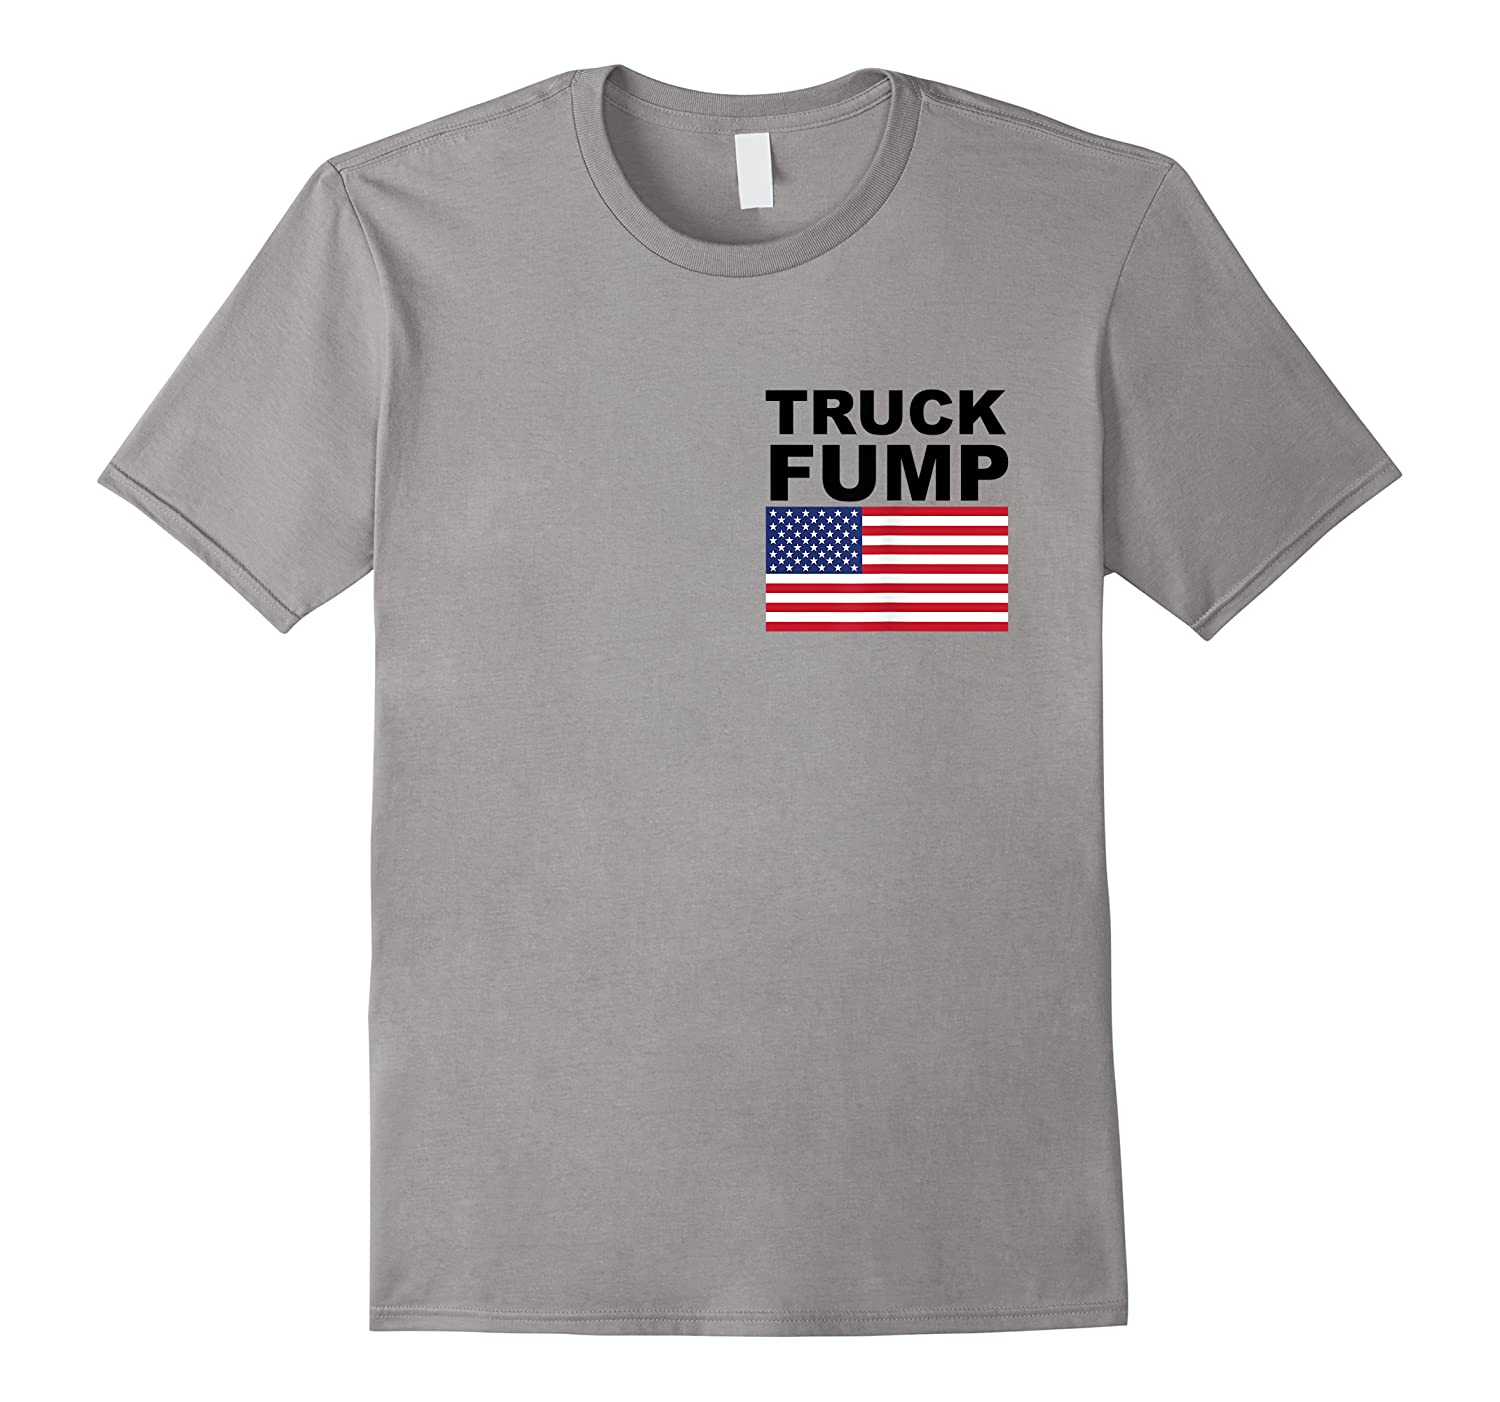 Truck Fump With American Flag Shirt For And Resist T-shirt